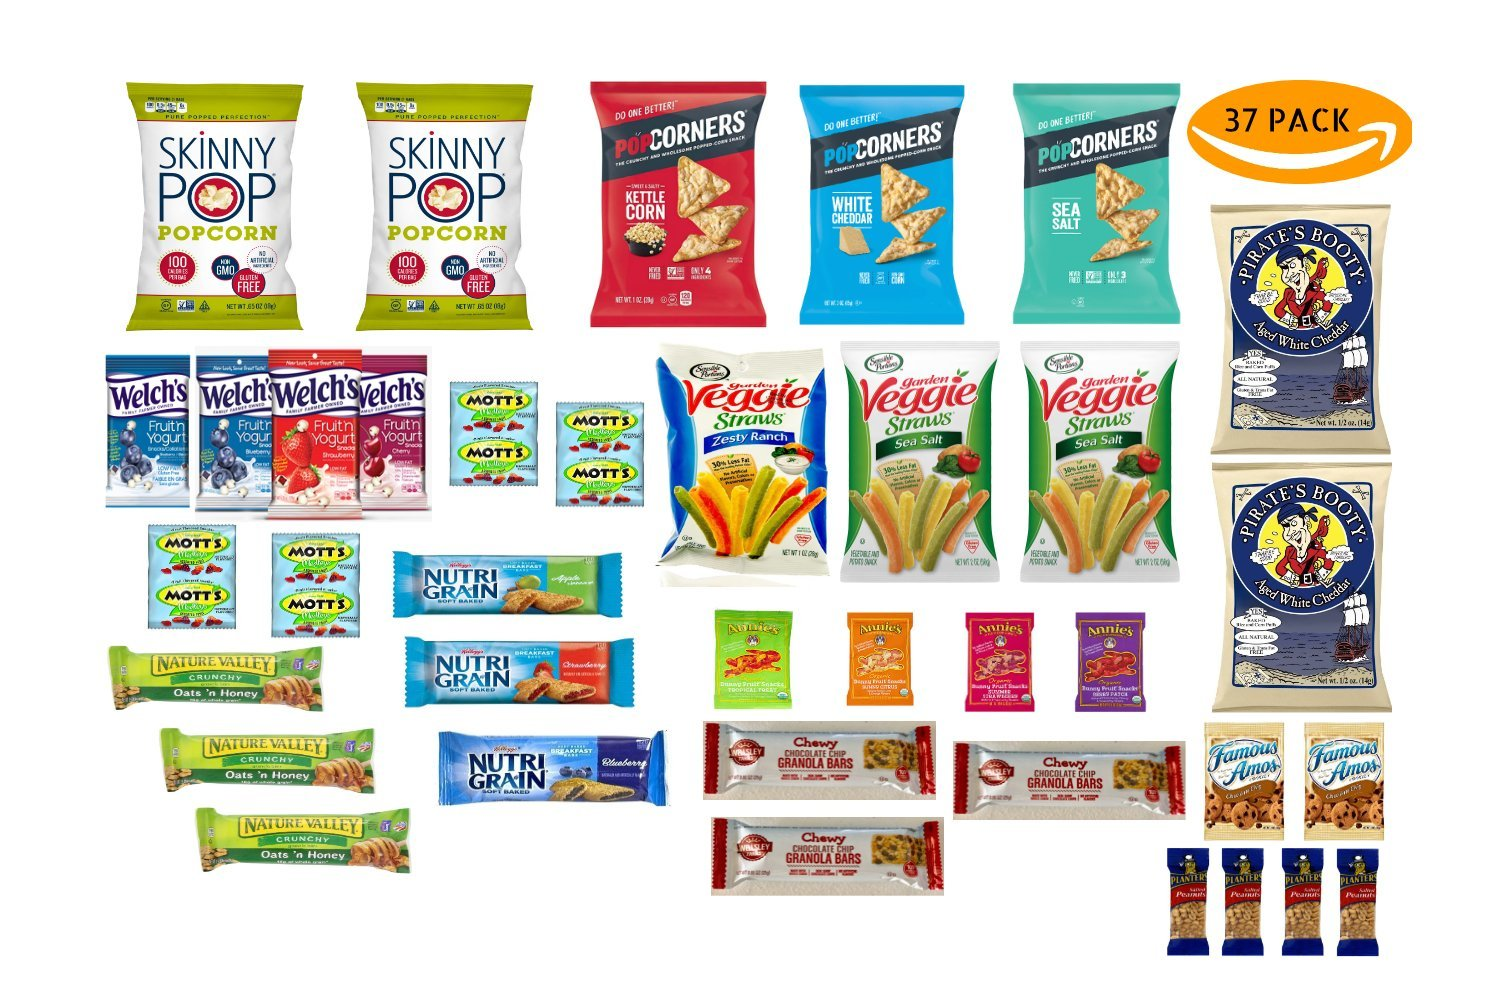 HEALTHY SNACKS, BAR AND GUMMIE VARIETY PACK by Thrive Grocery - assortment of 37 individually wrapped, full-size single serve snacks. by Thrive Grocery